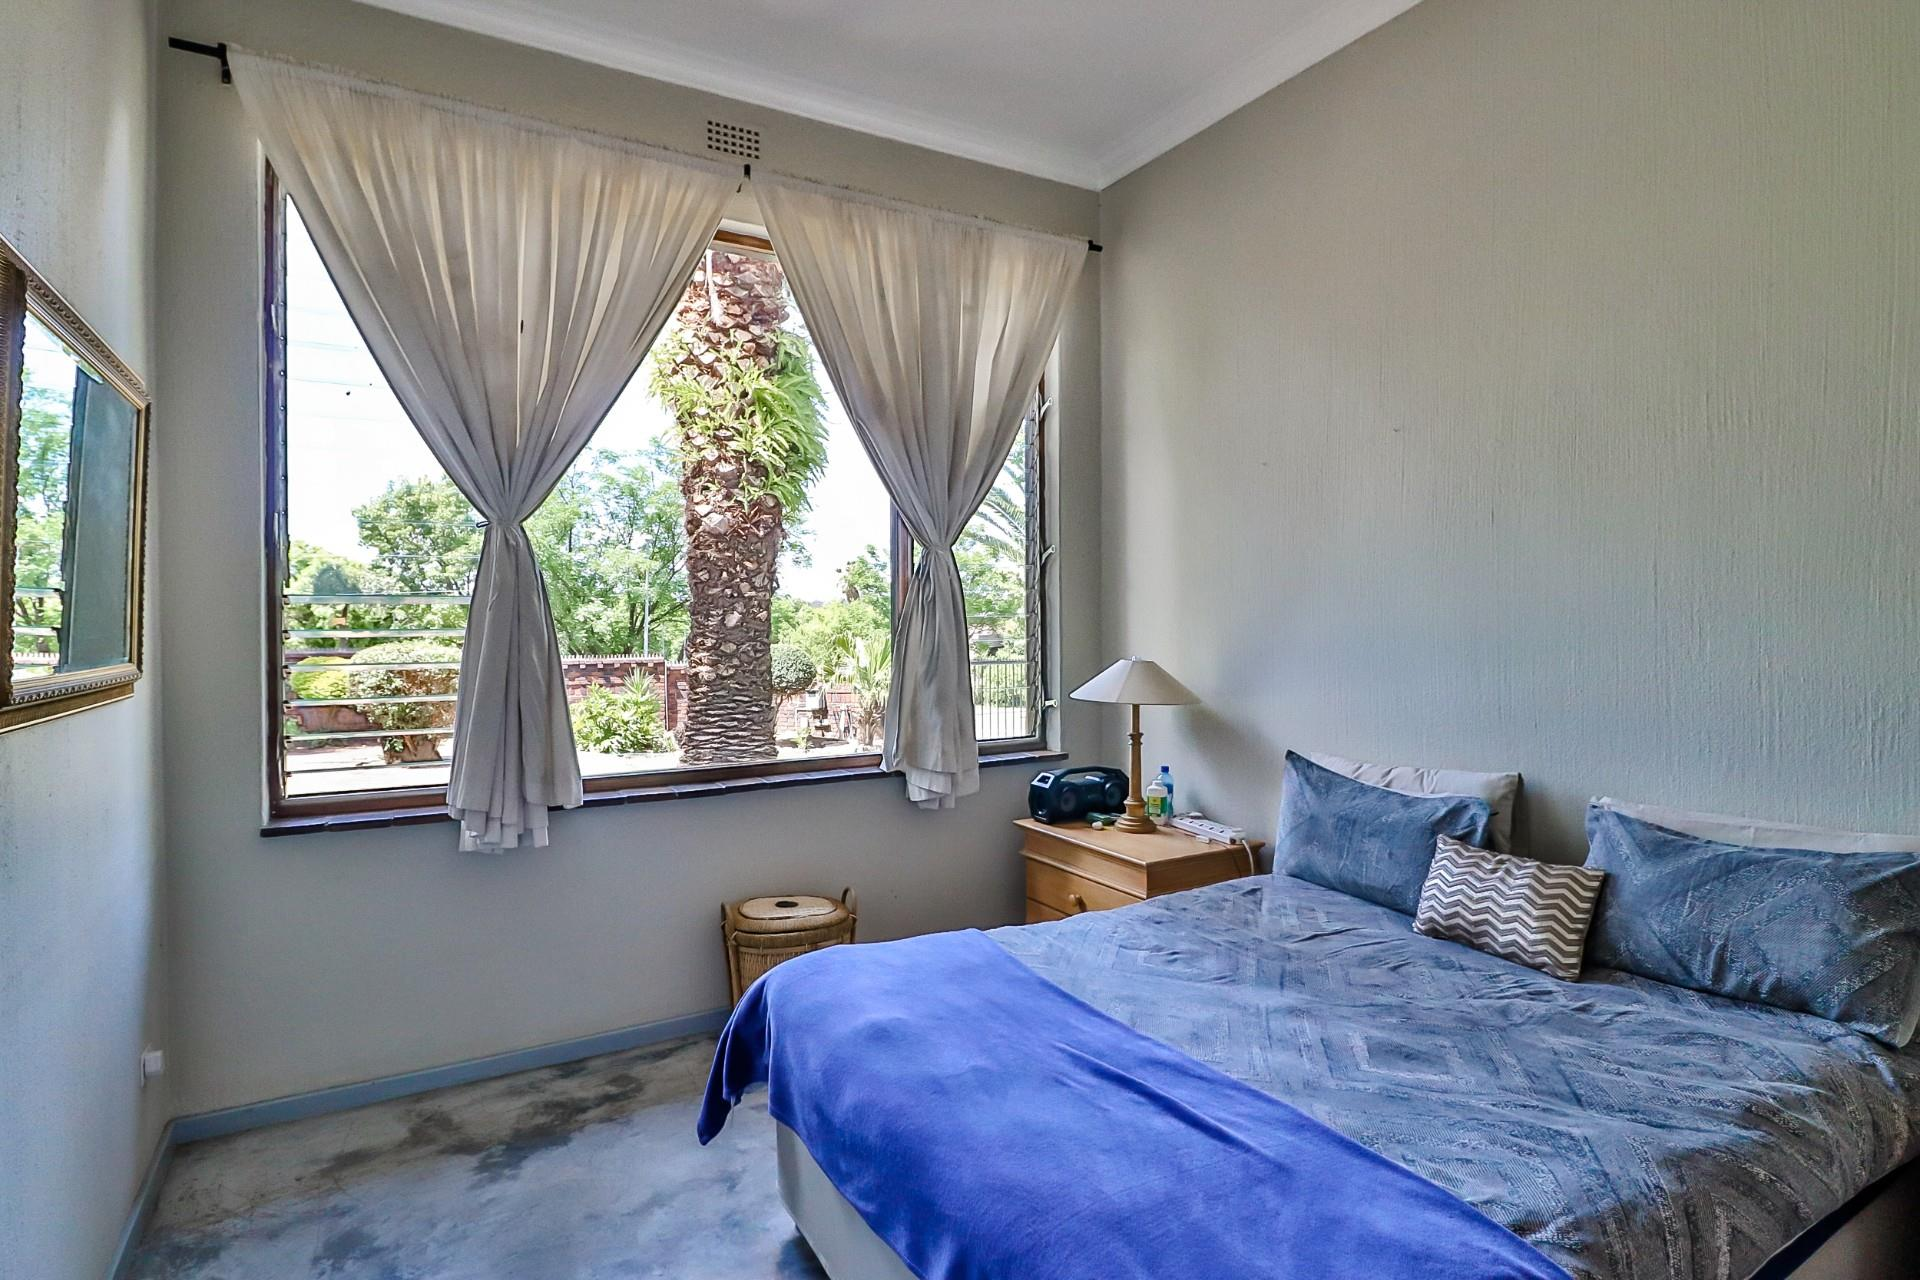 5 Bedroom House For Sale in Bryanston